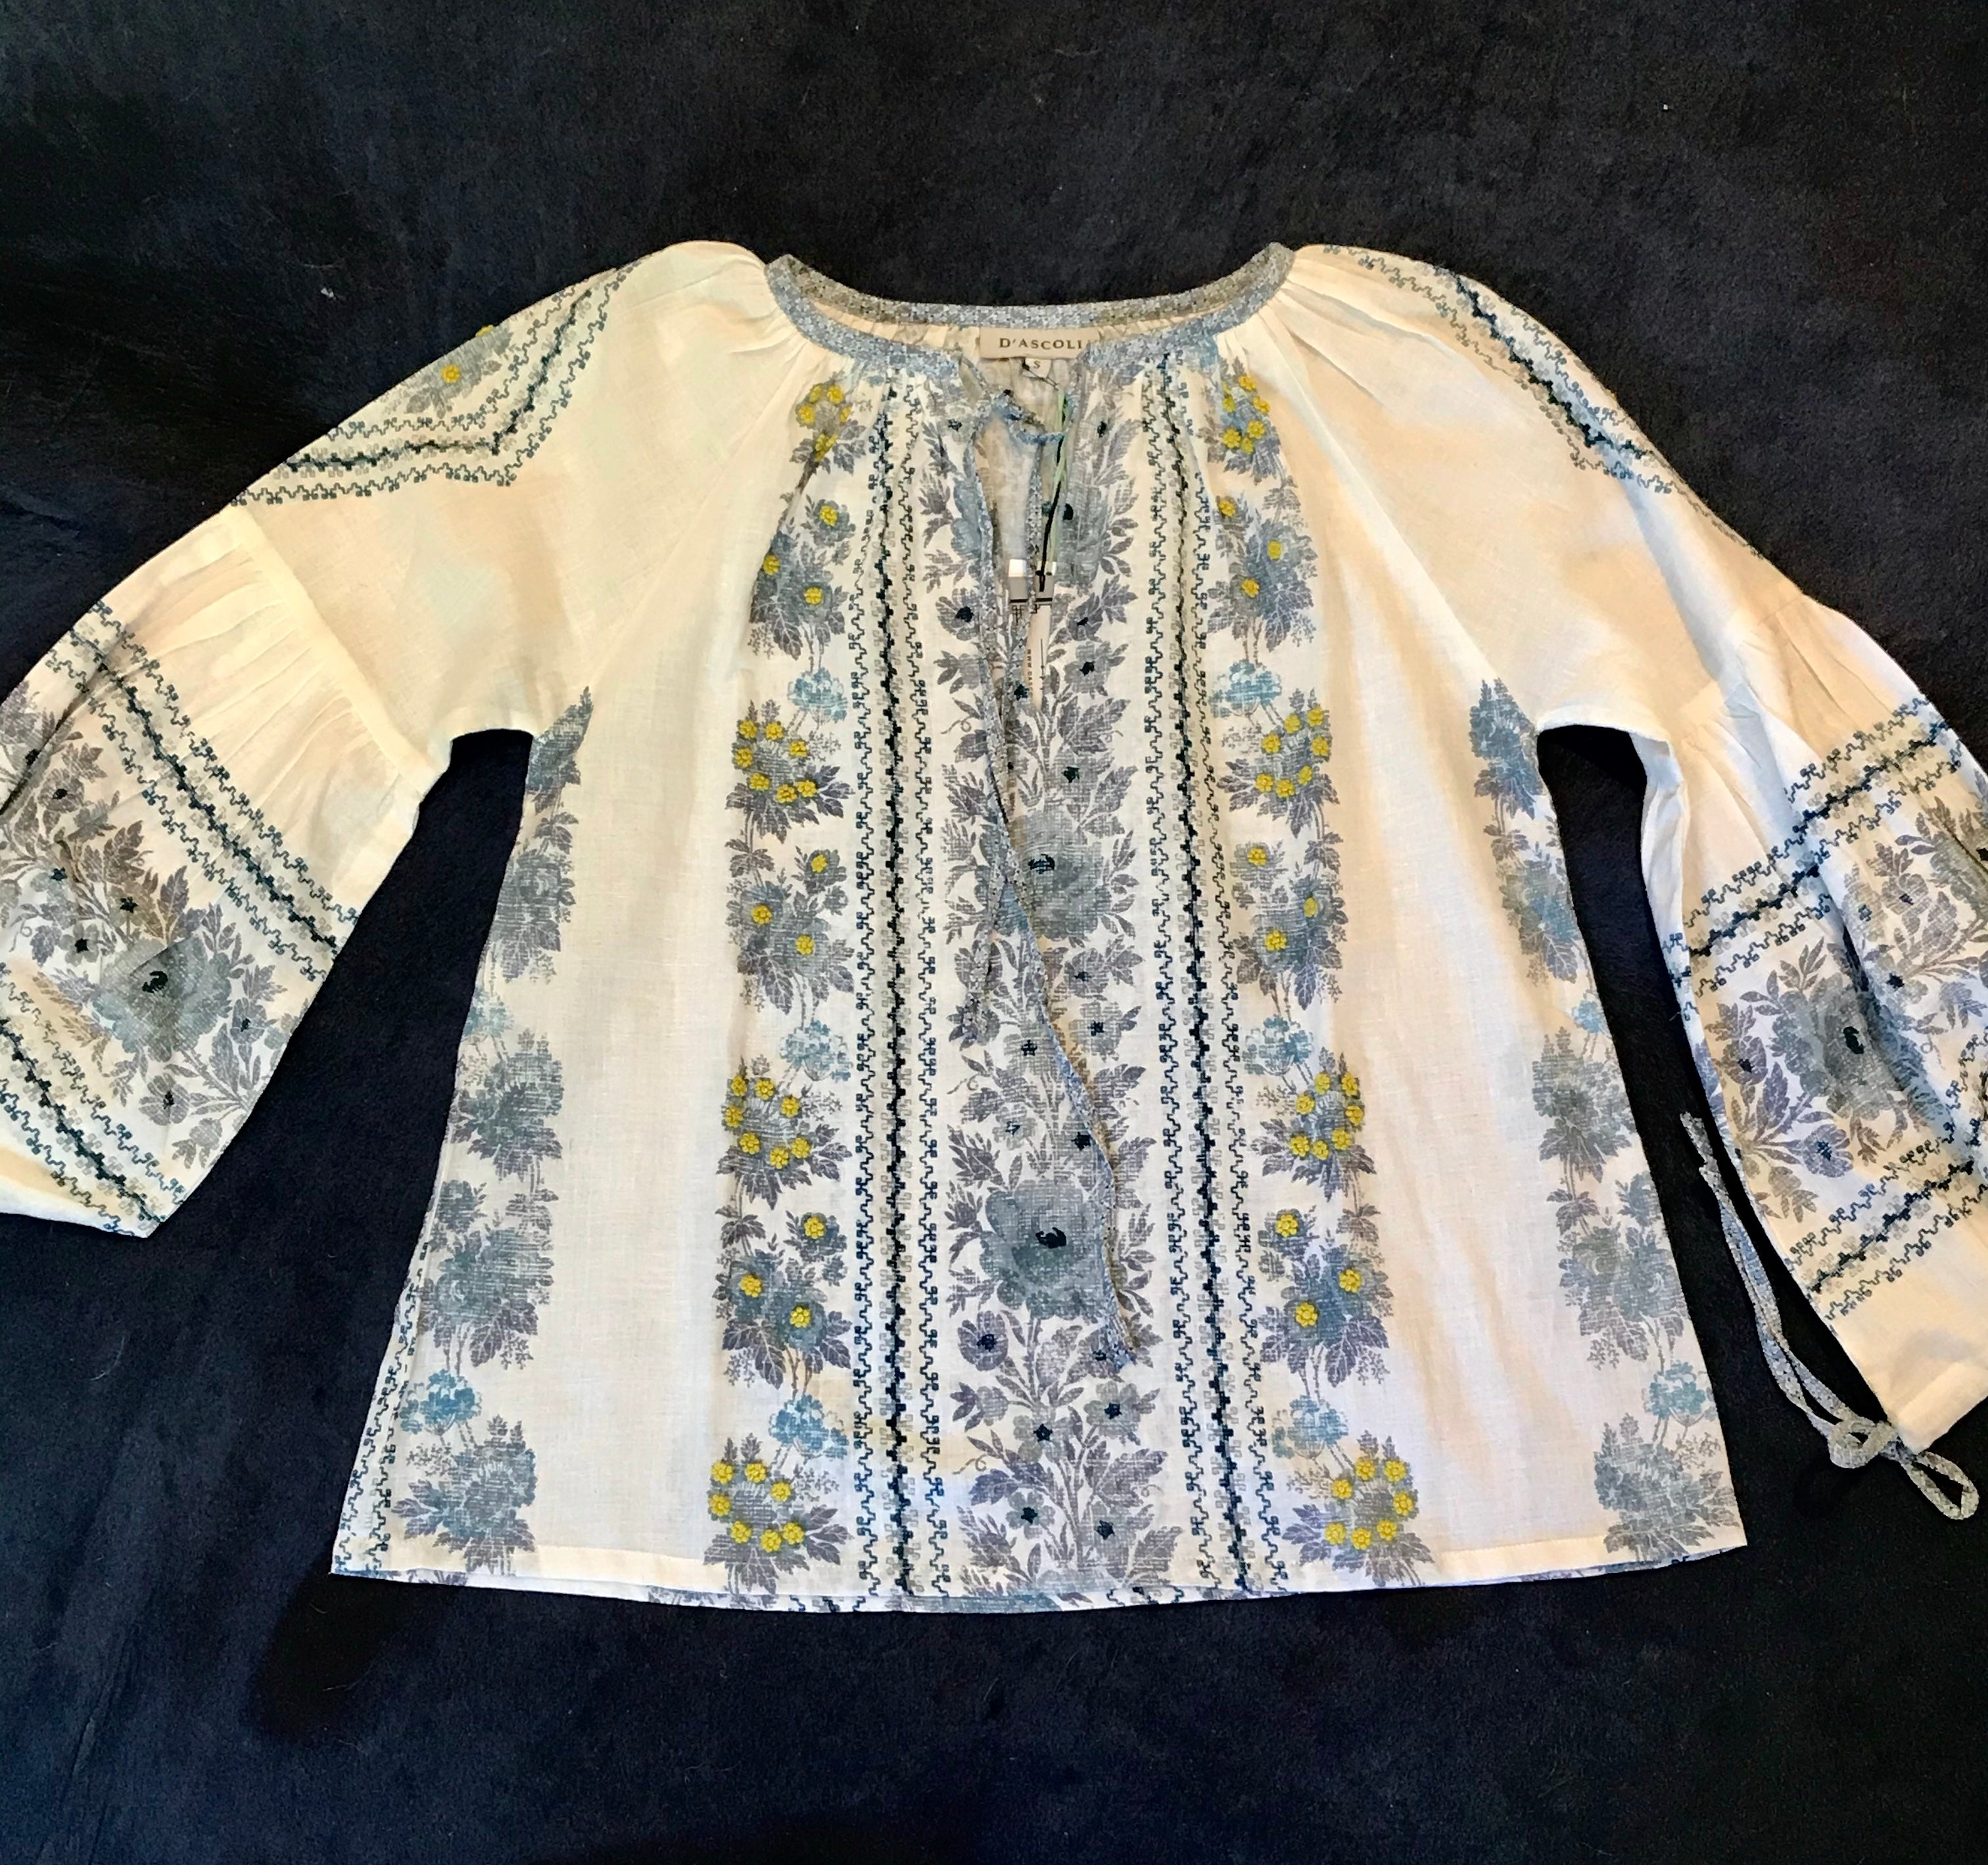 D'Ascoli Flamenco Top with Embroidery-Blue & Yellow